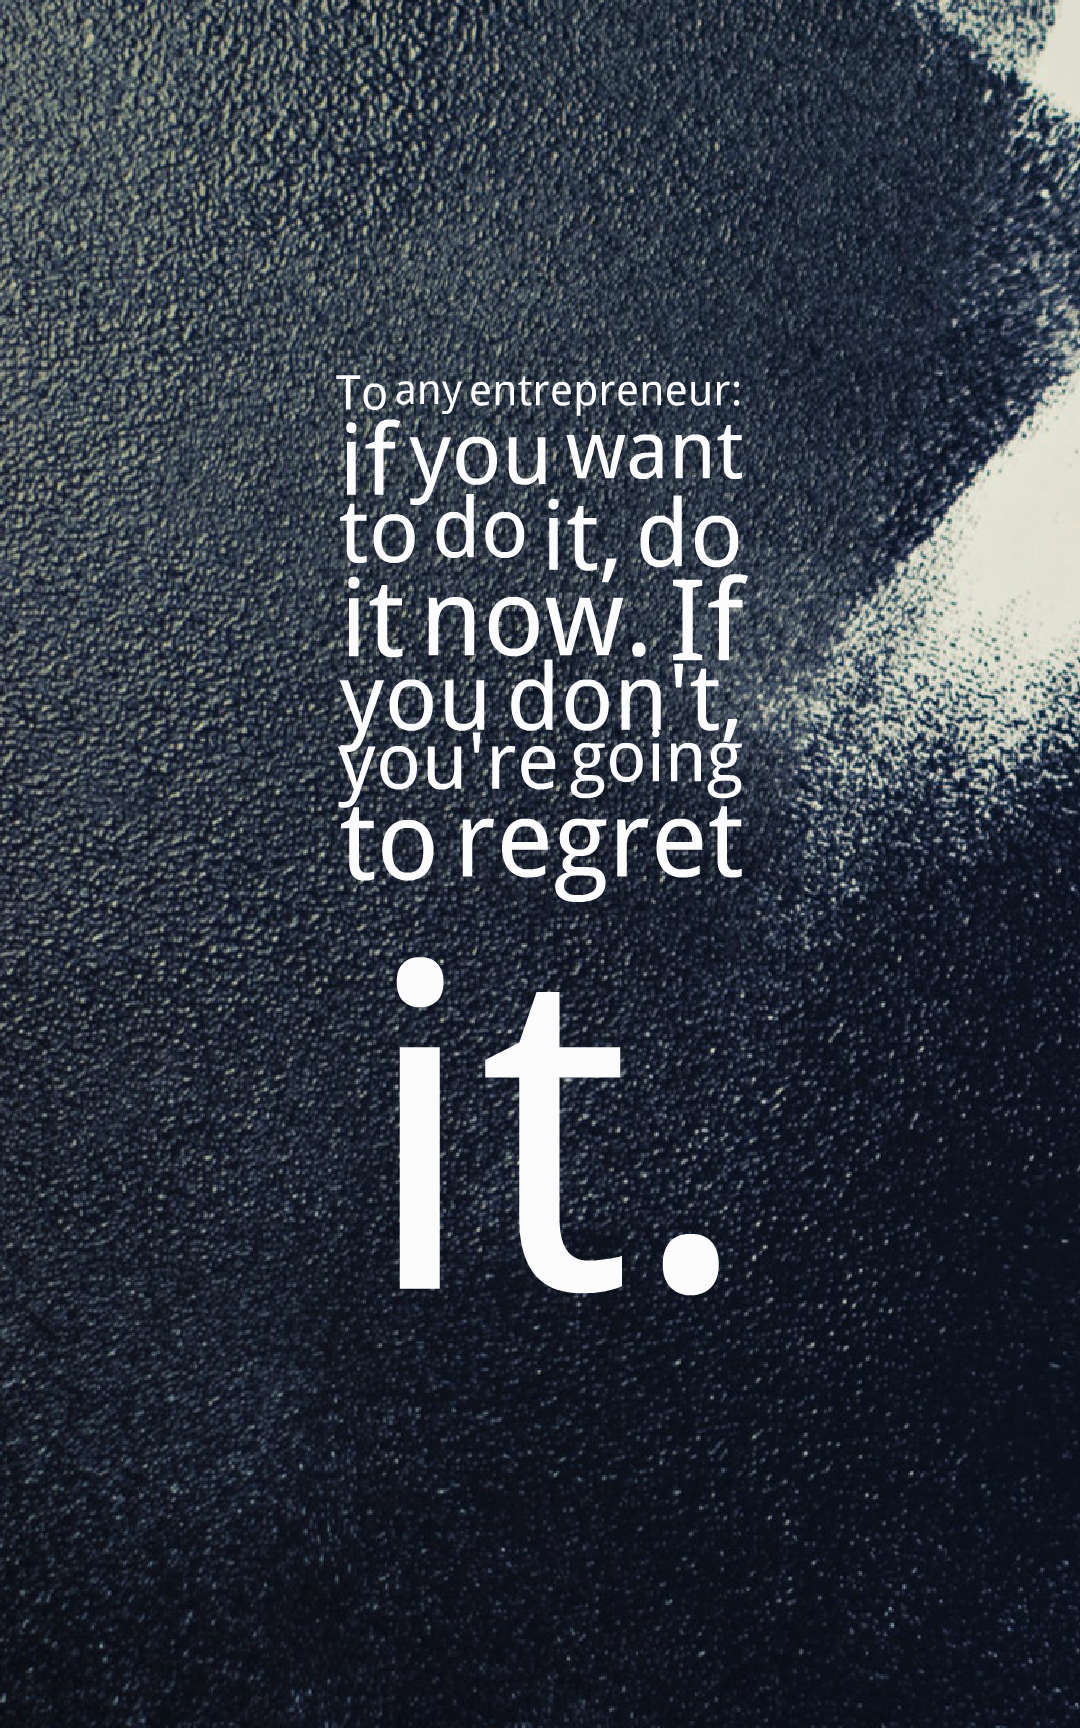 Quotes image of To any entrepreneur: if you want to do it, do it now. If you don't, you're going to regret it.